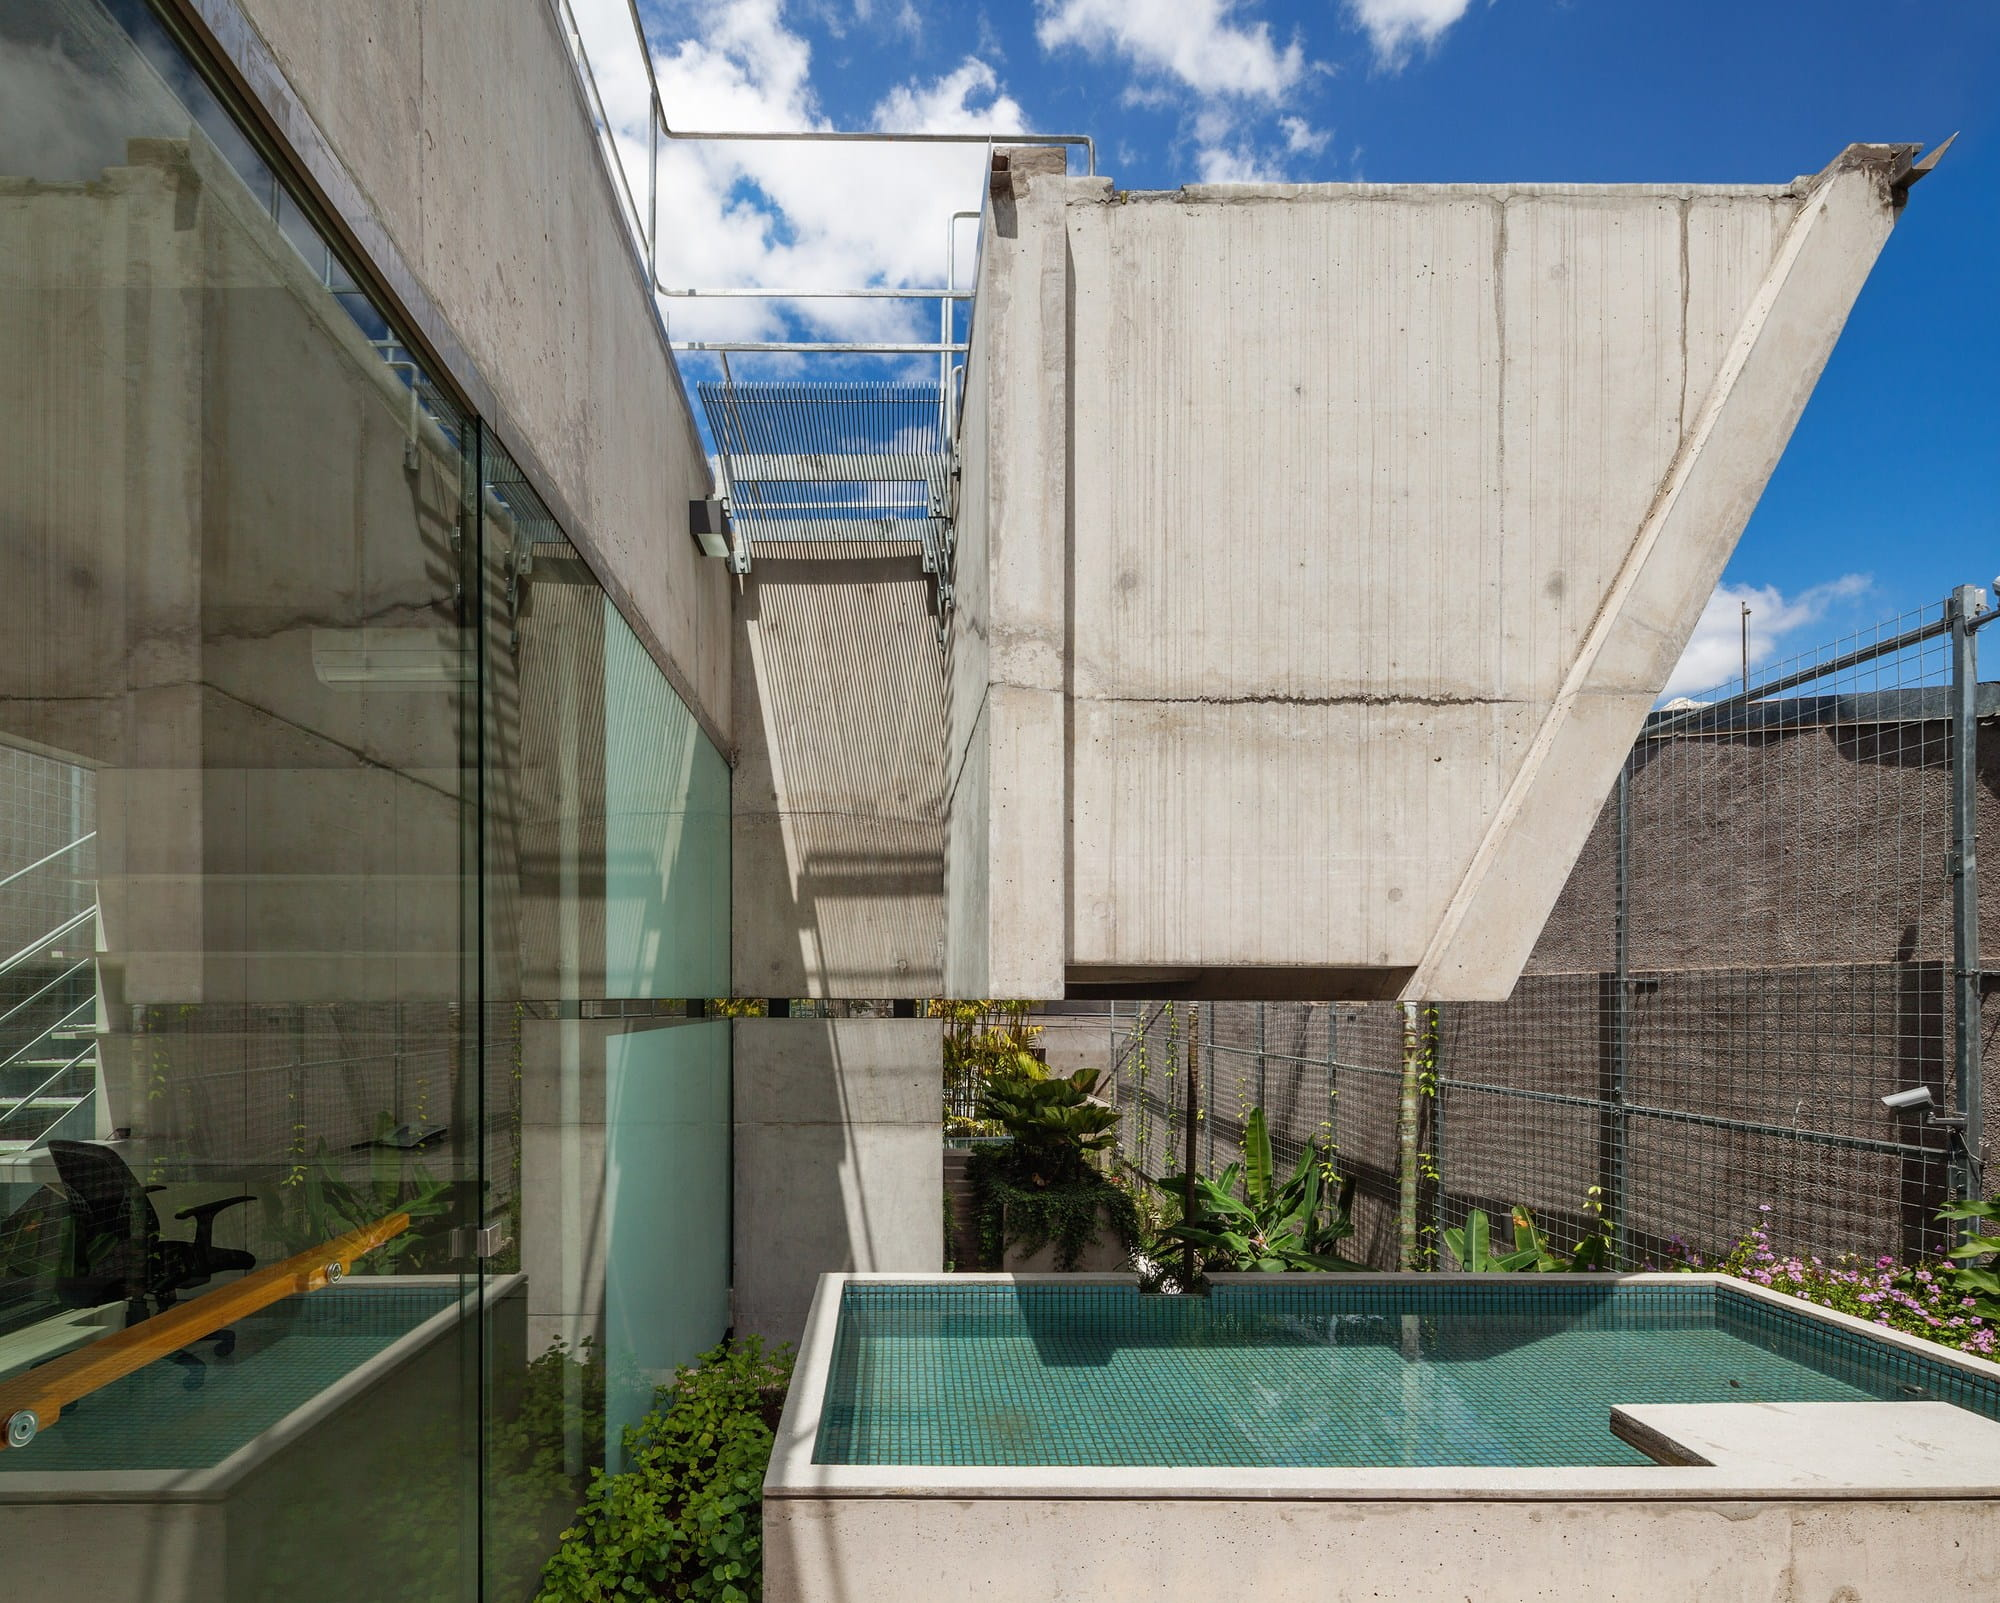 Weekend house in Sao Paulo by SPBR Arquitetos